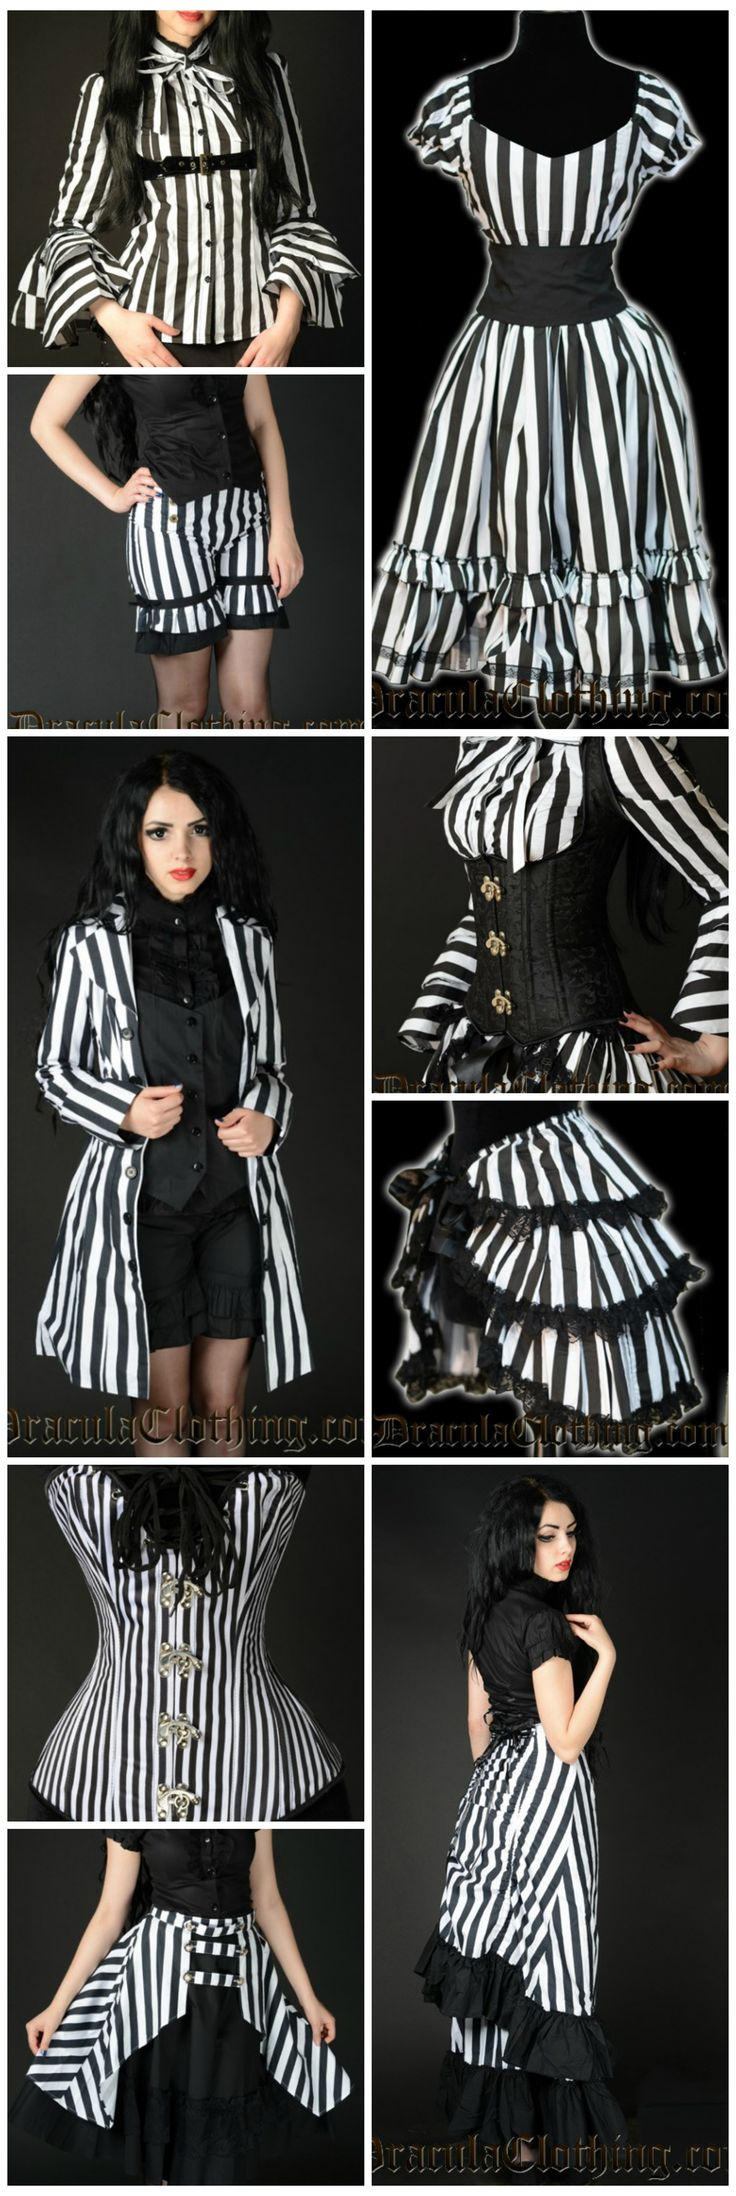 This place is absolutely my favourite online shop for Tim Burton-inspired clothing! Very affordable prices, they ship worldwide.  Perfect for our 'Halloween with Tim' Party or year-round wear!  Black & White striped clothing, very Burton-esque. #want